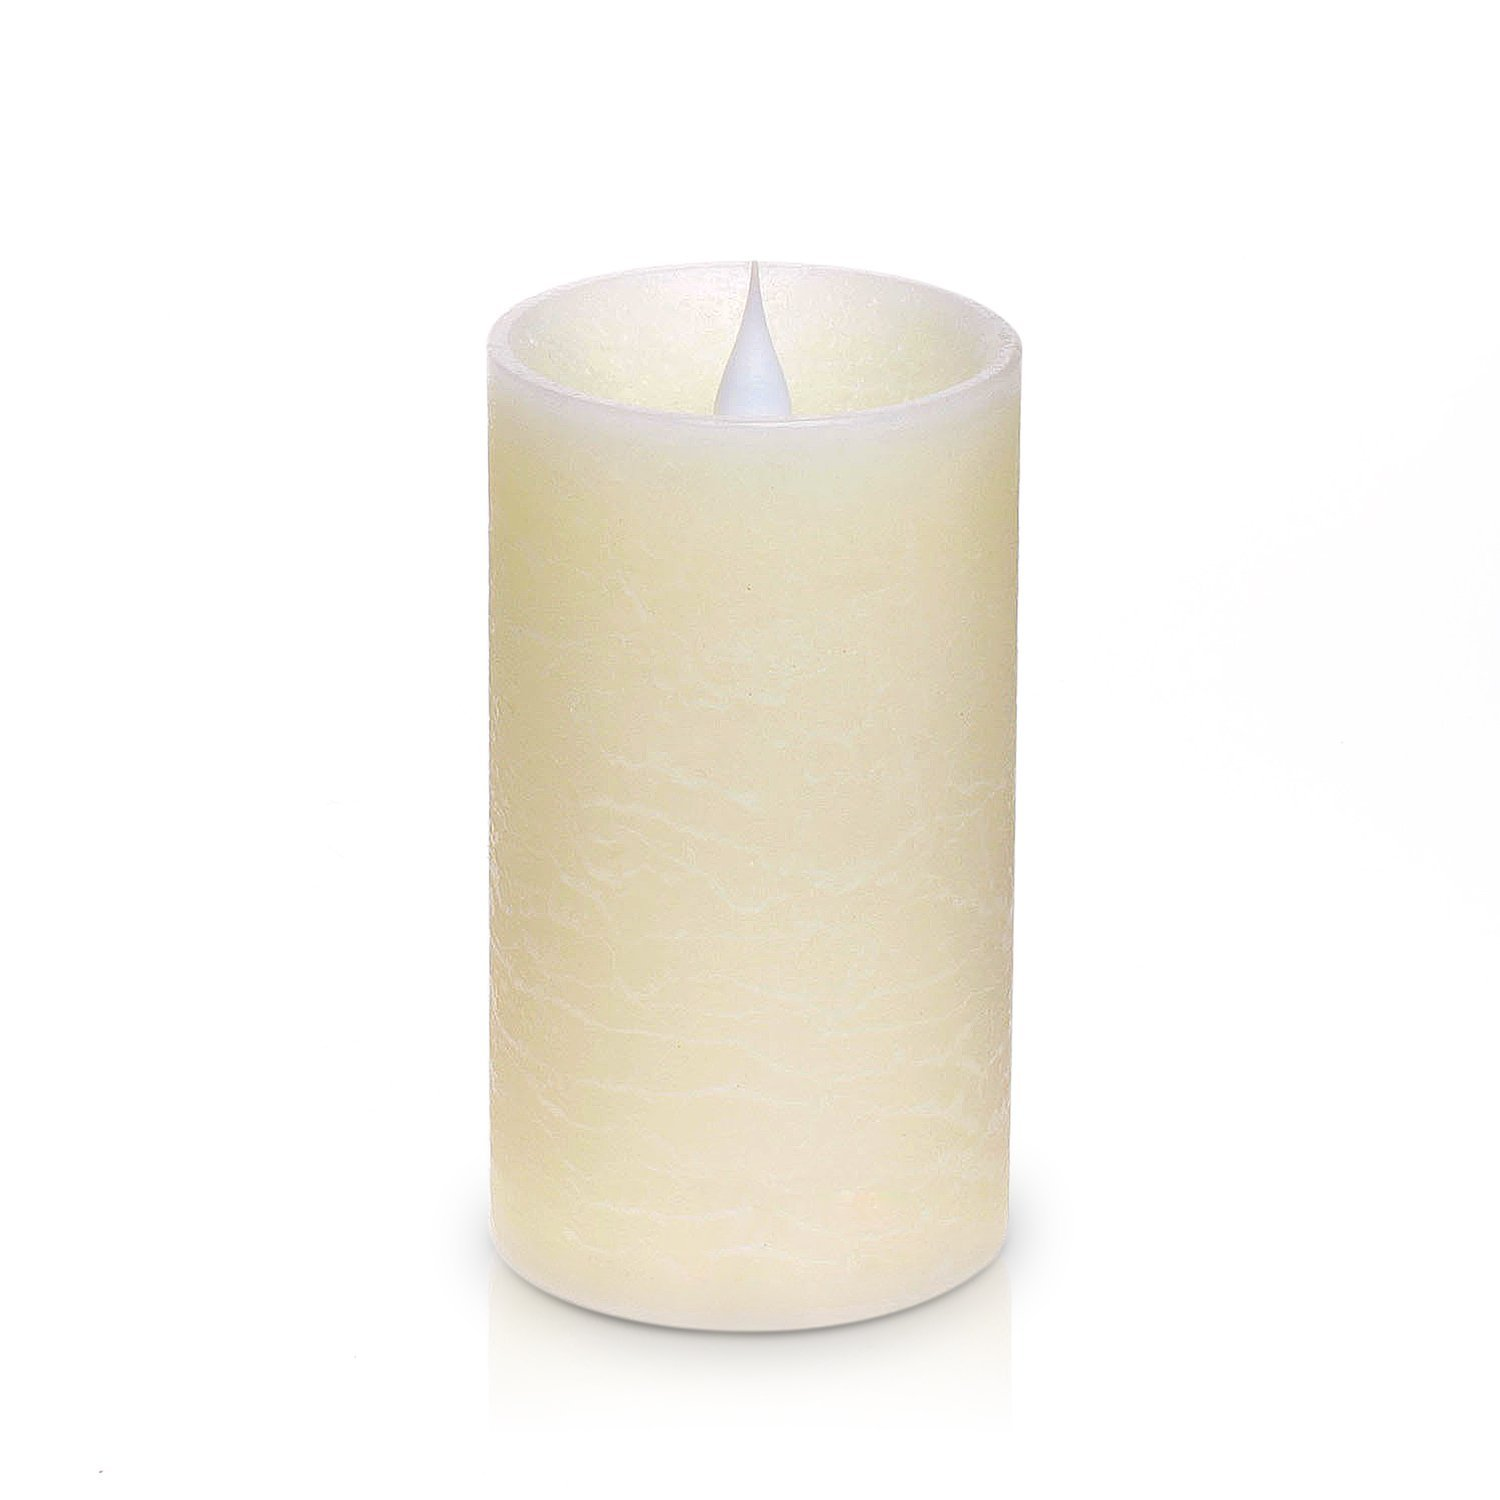 SIMPLUX Rustic Moving Flame Led Candle with Timer,3x5.25 Inches,Ivory,Pillar